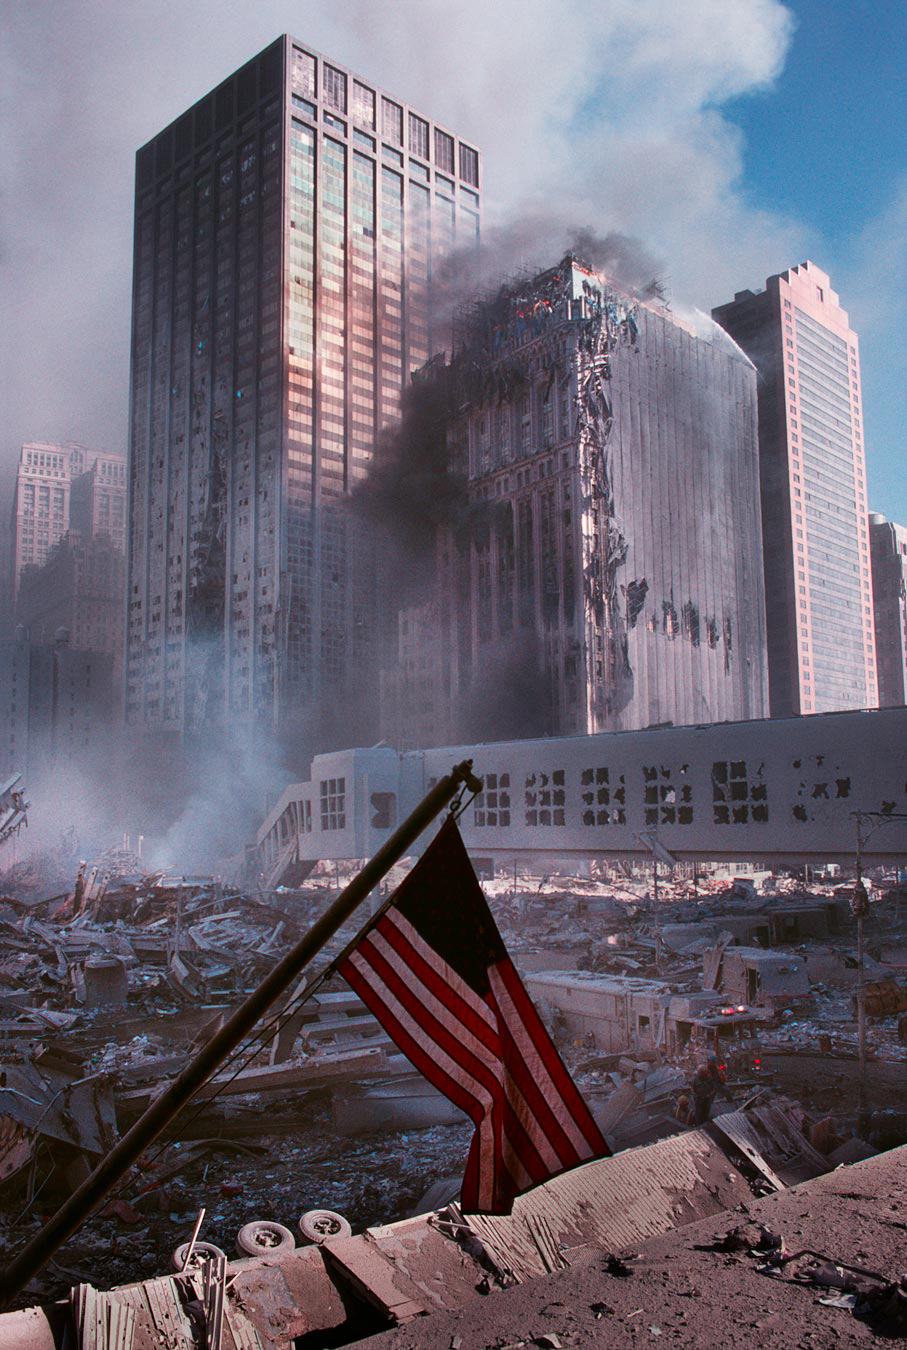 essays on september 11th attacks Appeals to the emotions of post-september 11th america were take immediate action to prevent future attacks com/essays/september-11-2001/16642.